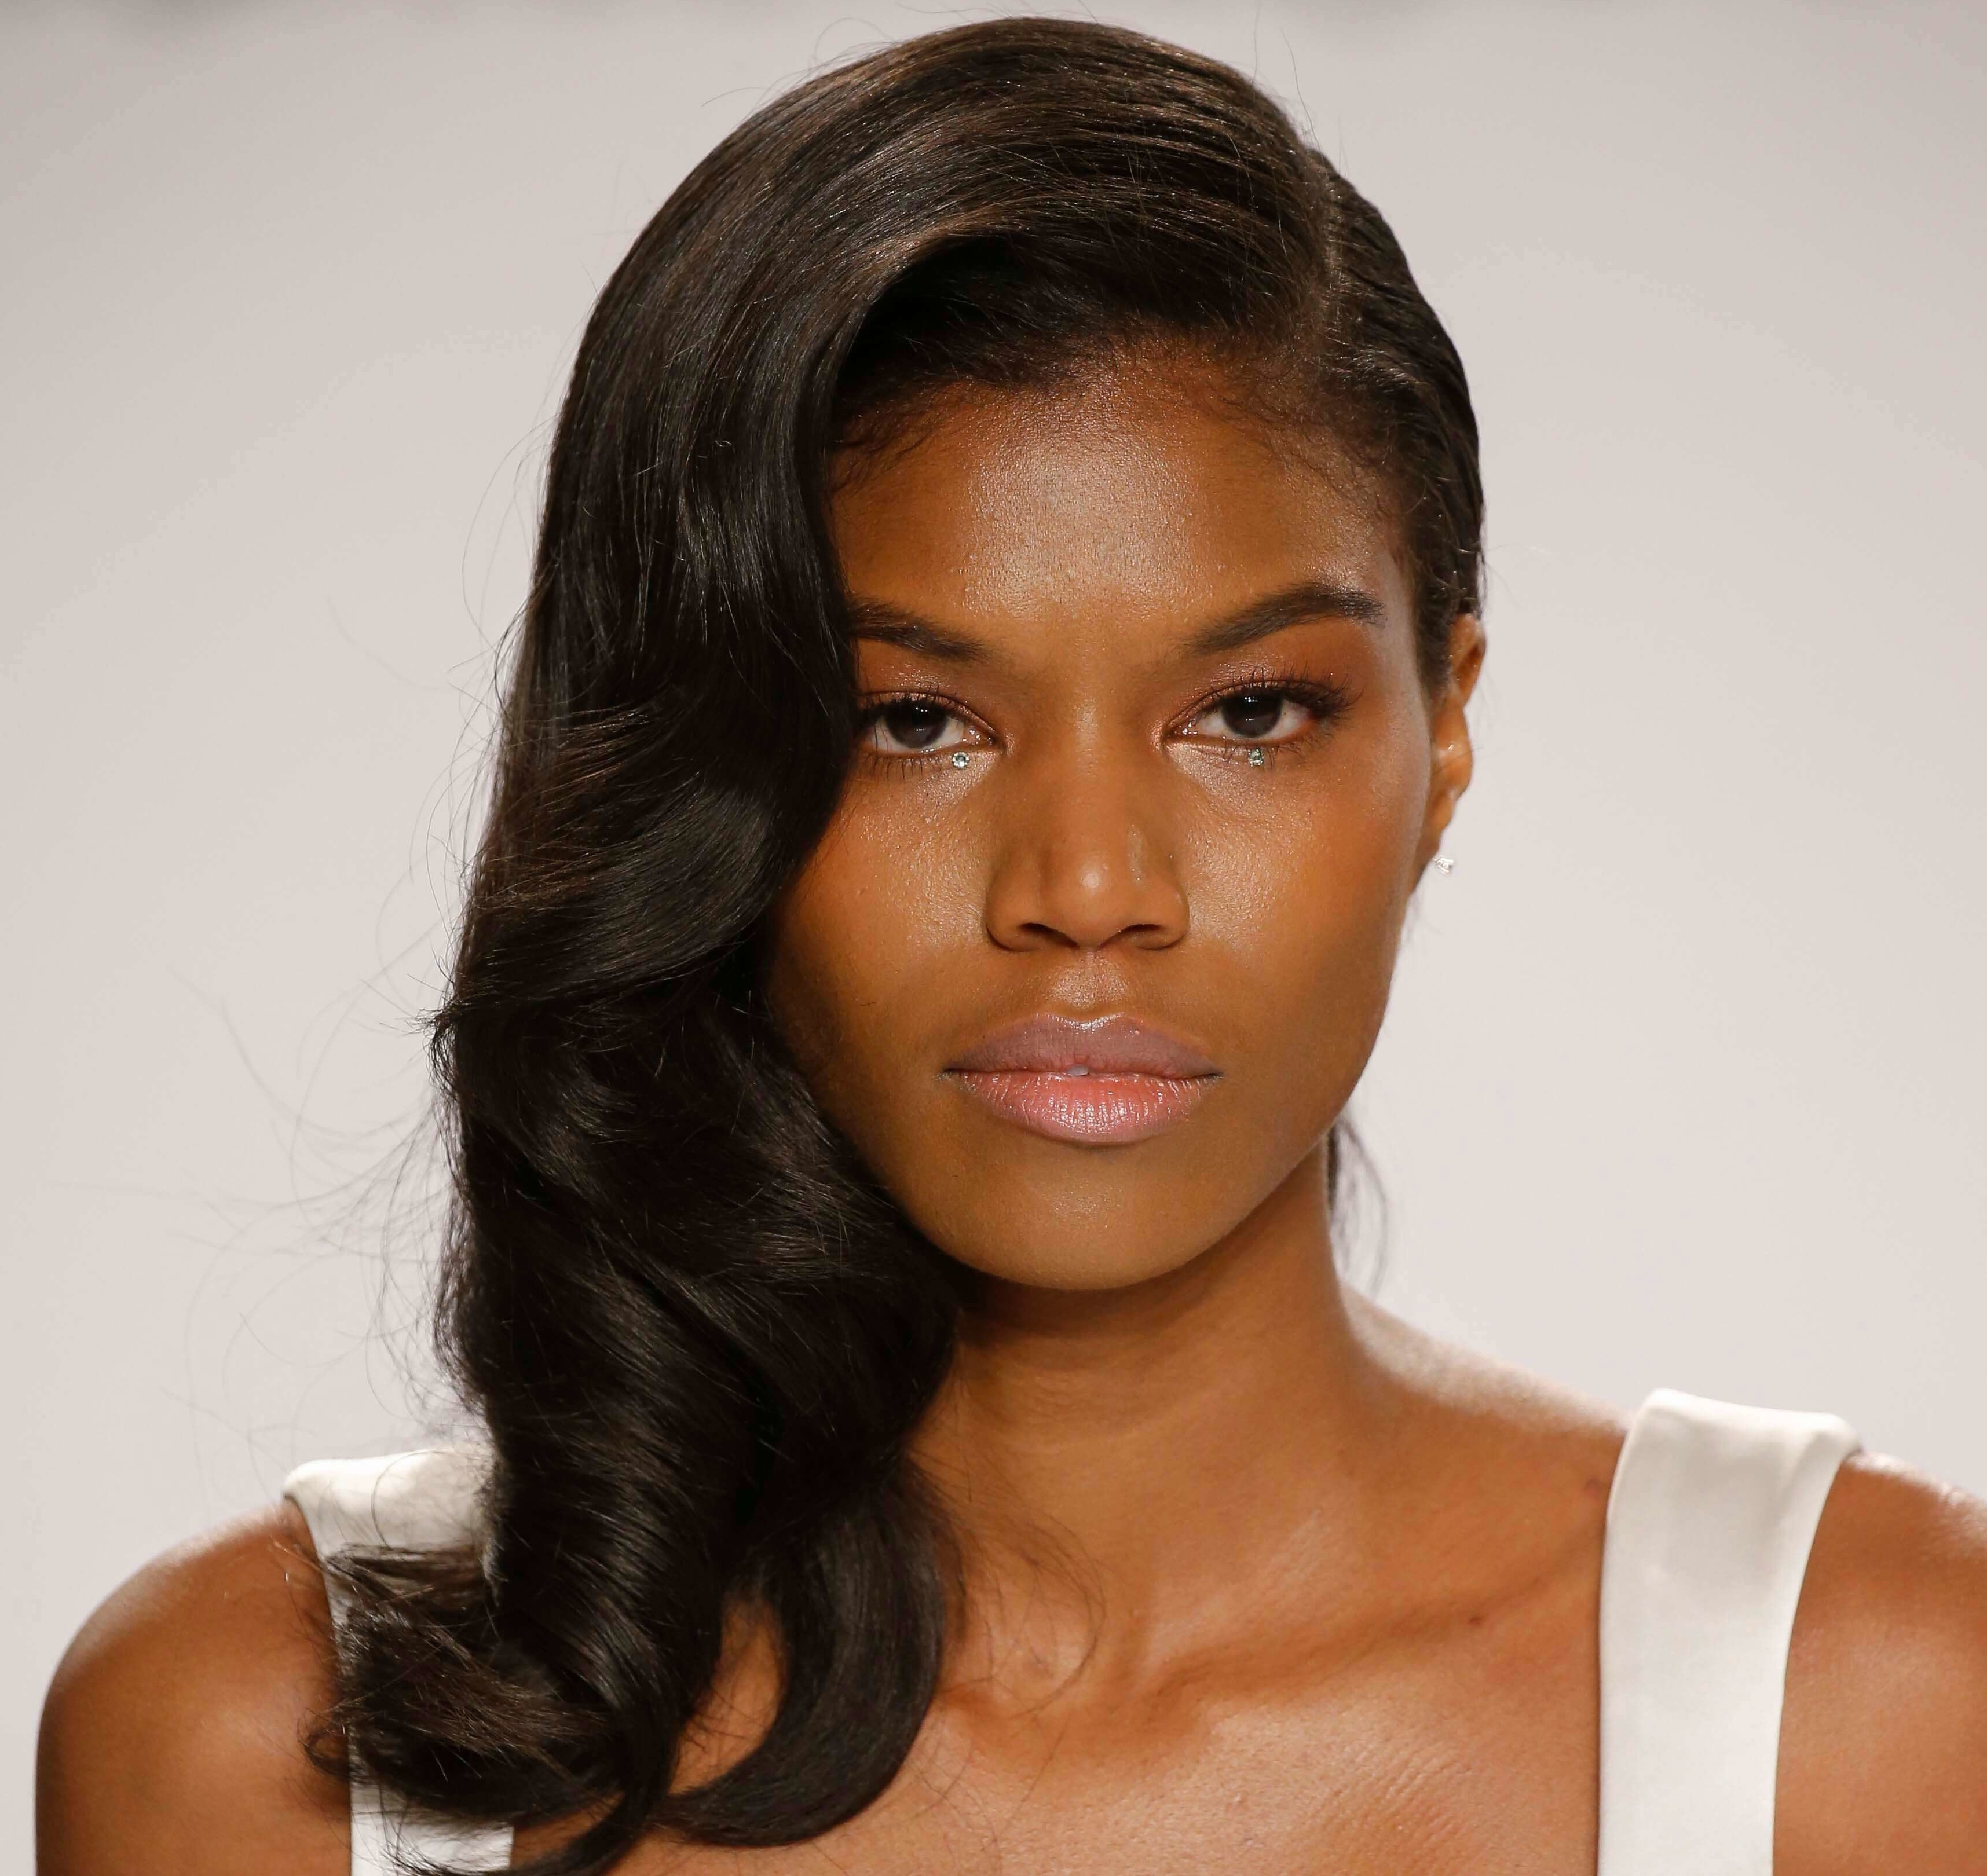 Stylish hairstyles for black women from the runway